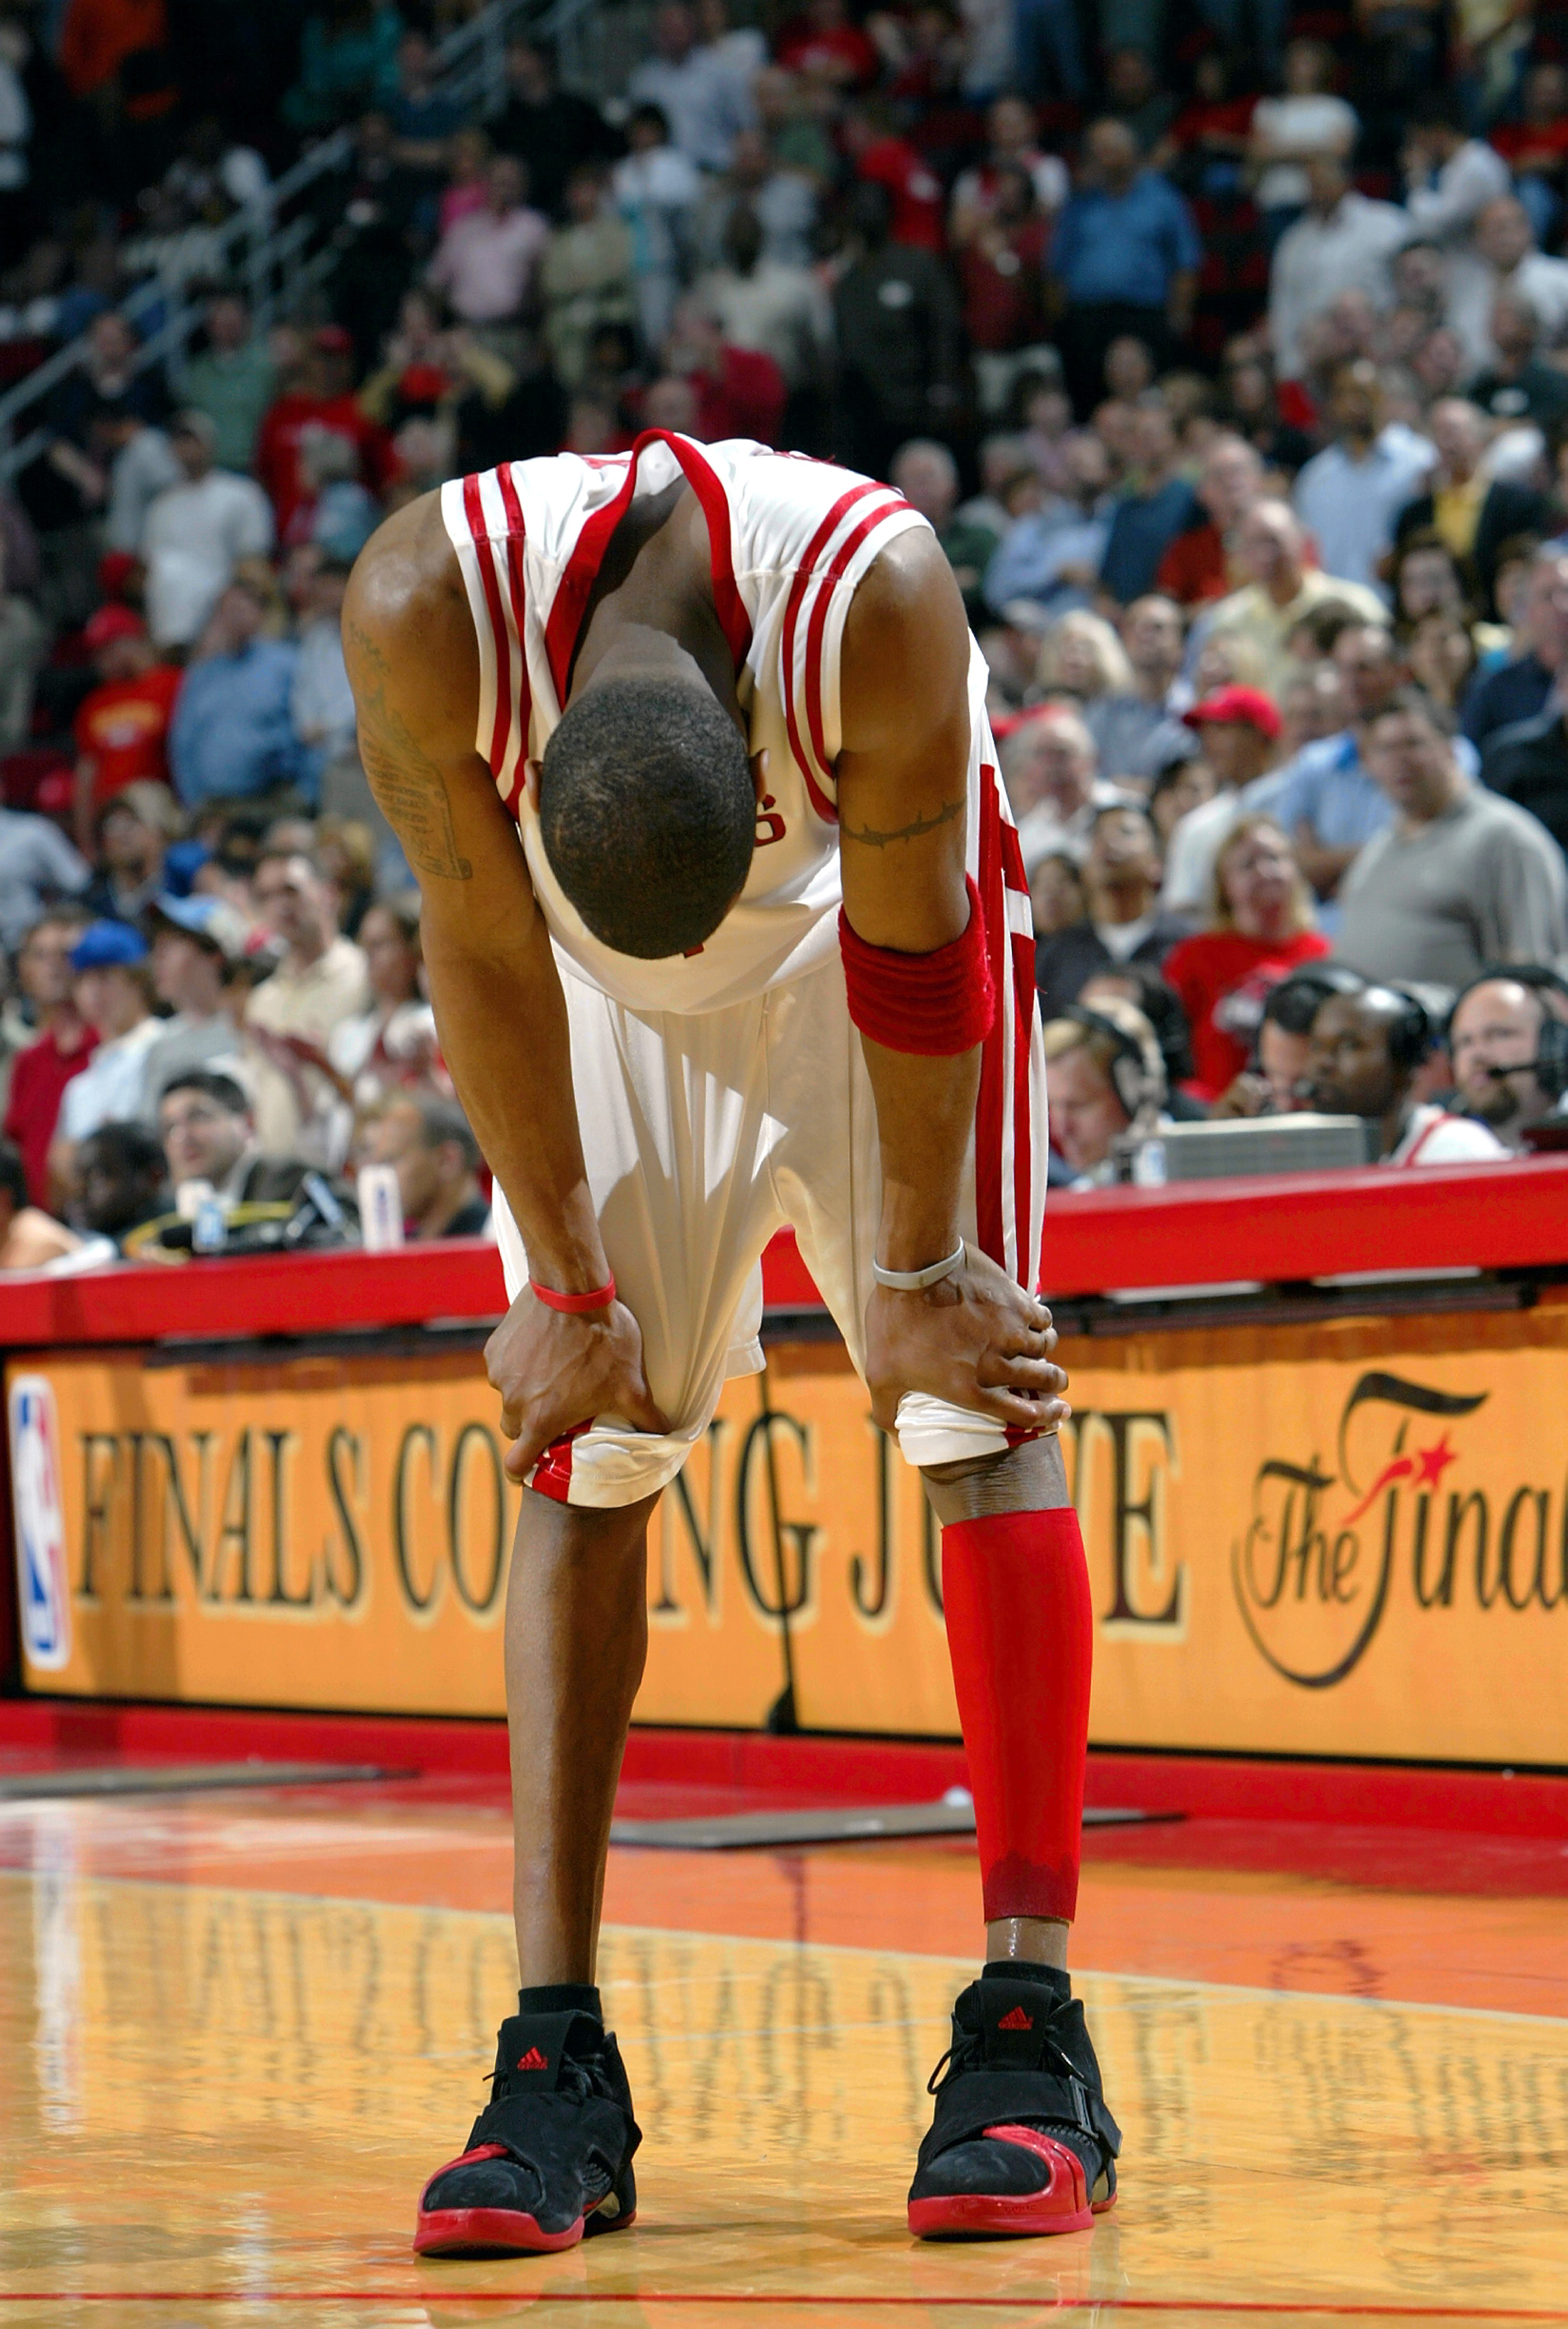 HOUSTON - APRIL 28:  Forward Tracy McGrady #1 of the Houston Rockets hangs his head in the final seconds of a 106-102 loss to the Dallas Mavericks in Game three of the Western Conference Quarterfinals during the 2005 NBA Playoffs on April 28, 2005 at the